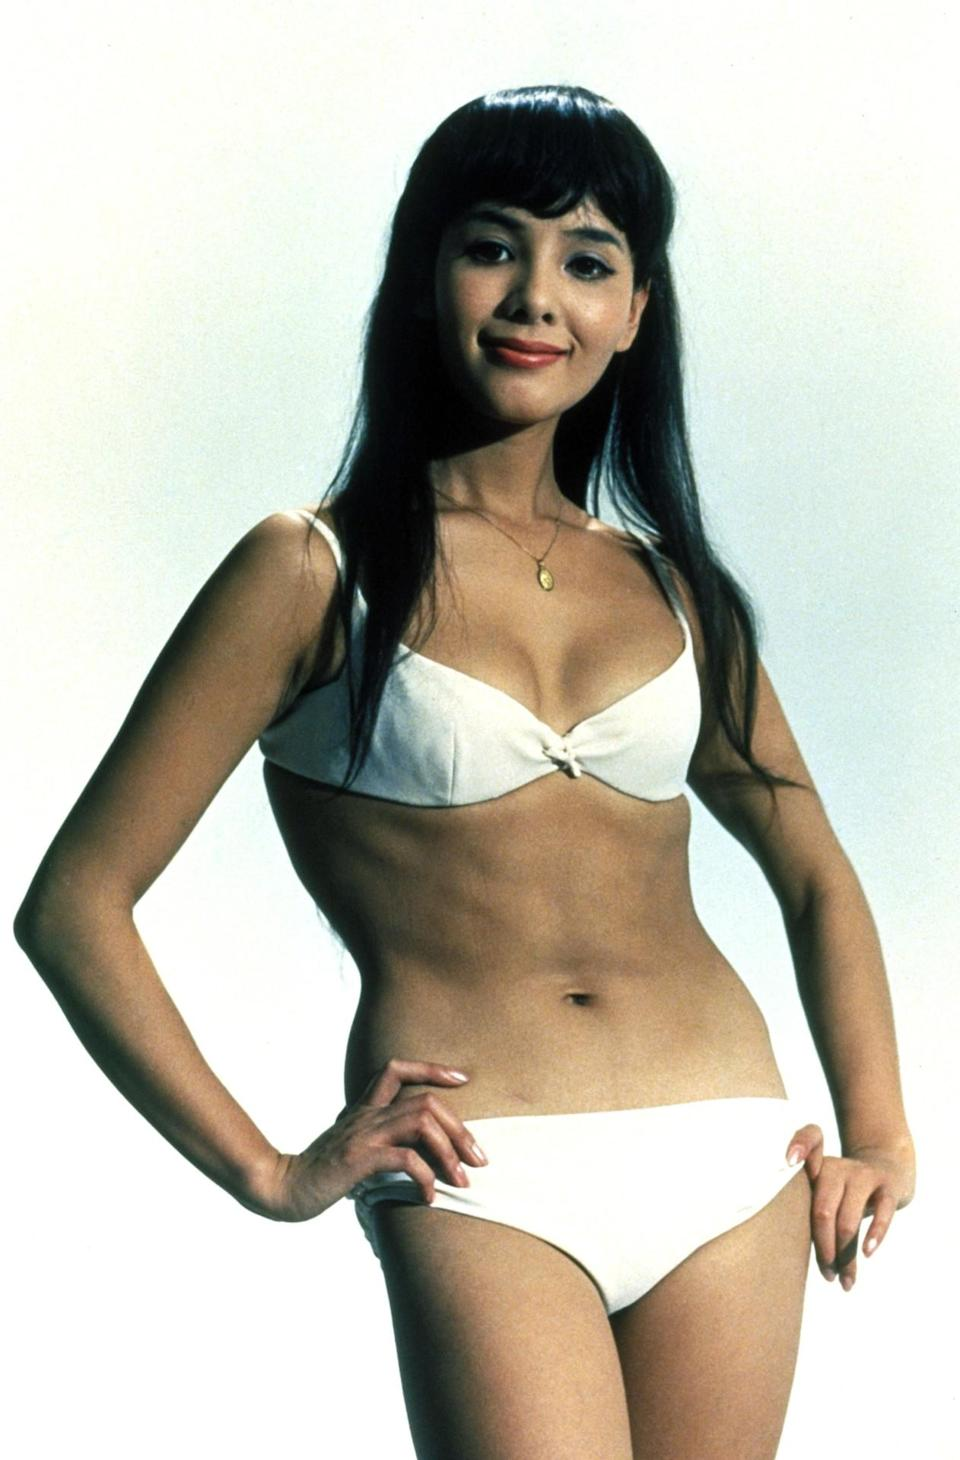 <p>The Japanese actress had trouble learning English so her lines were dubbed in, but she was able to fake being a ninja agent who discovers Blofeld's base hidden in a volcano. <i>(Photo: Everett Collection)</i></p>